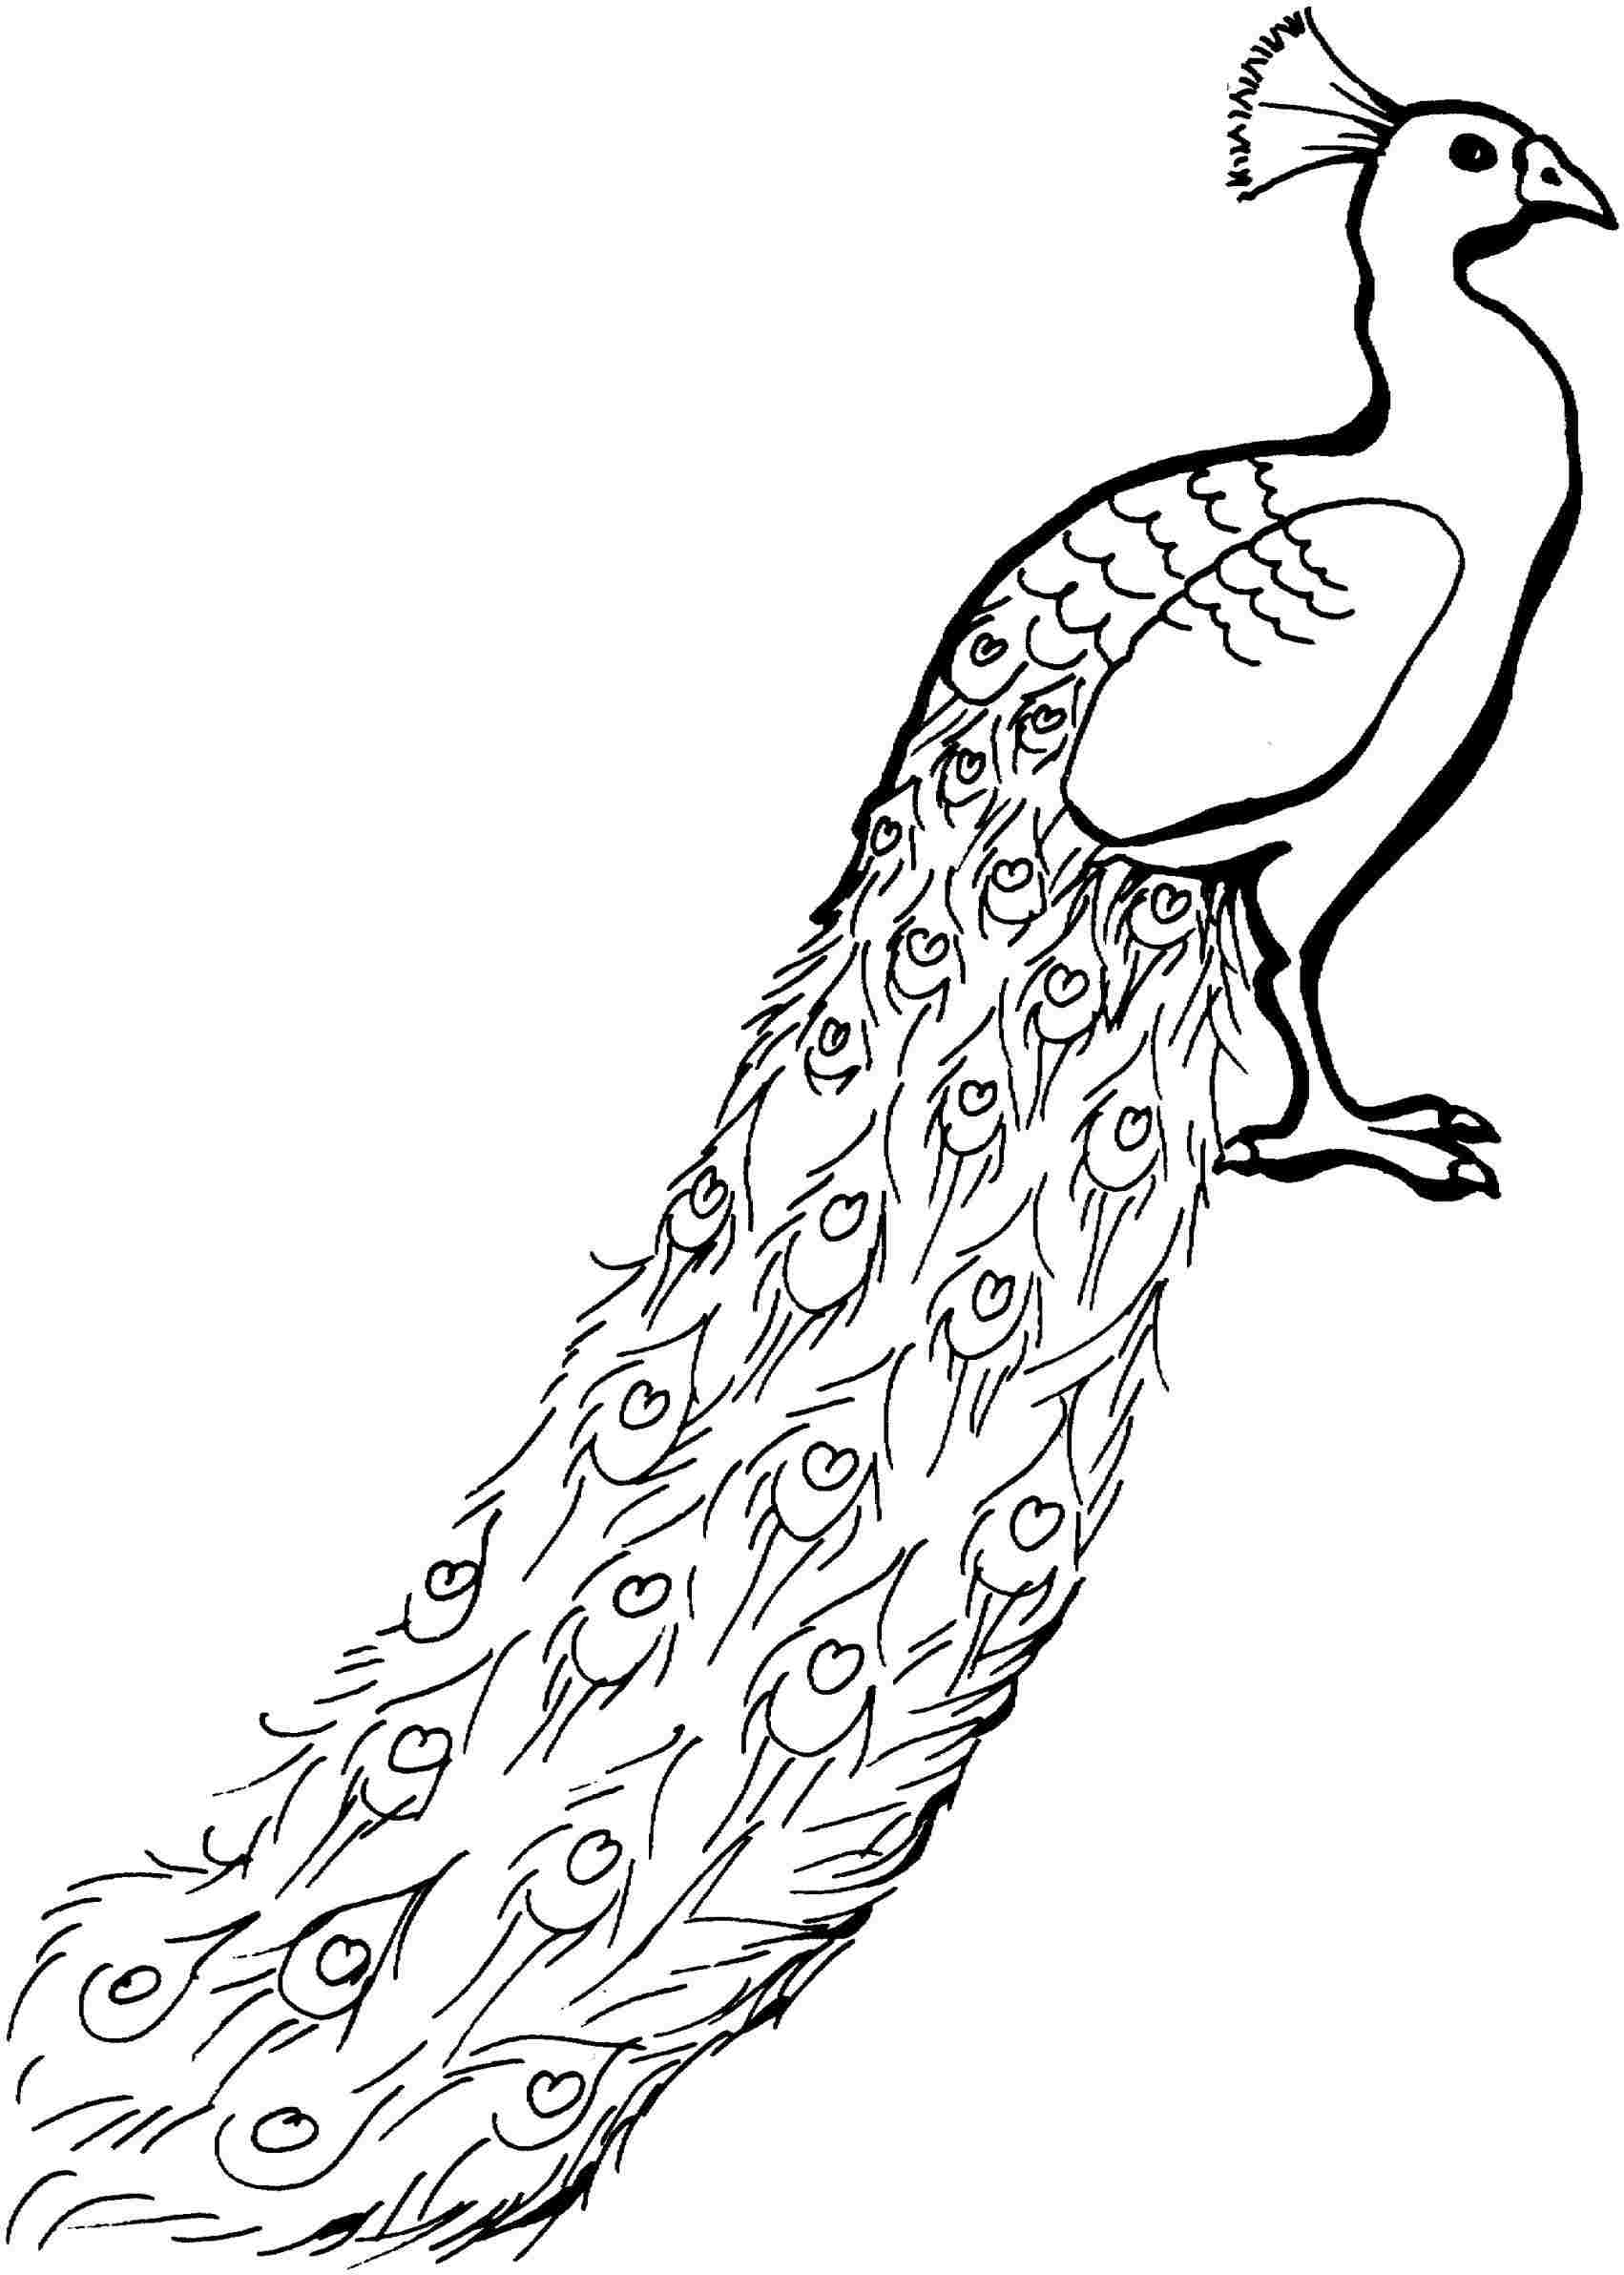 outline picture of a peacock peacock drawing outline at paintingvalleycom explore outline peacock of a picture